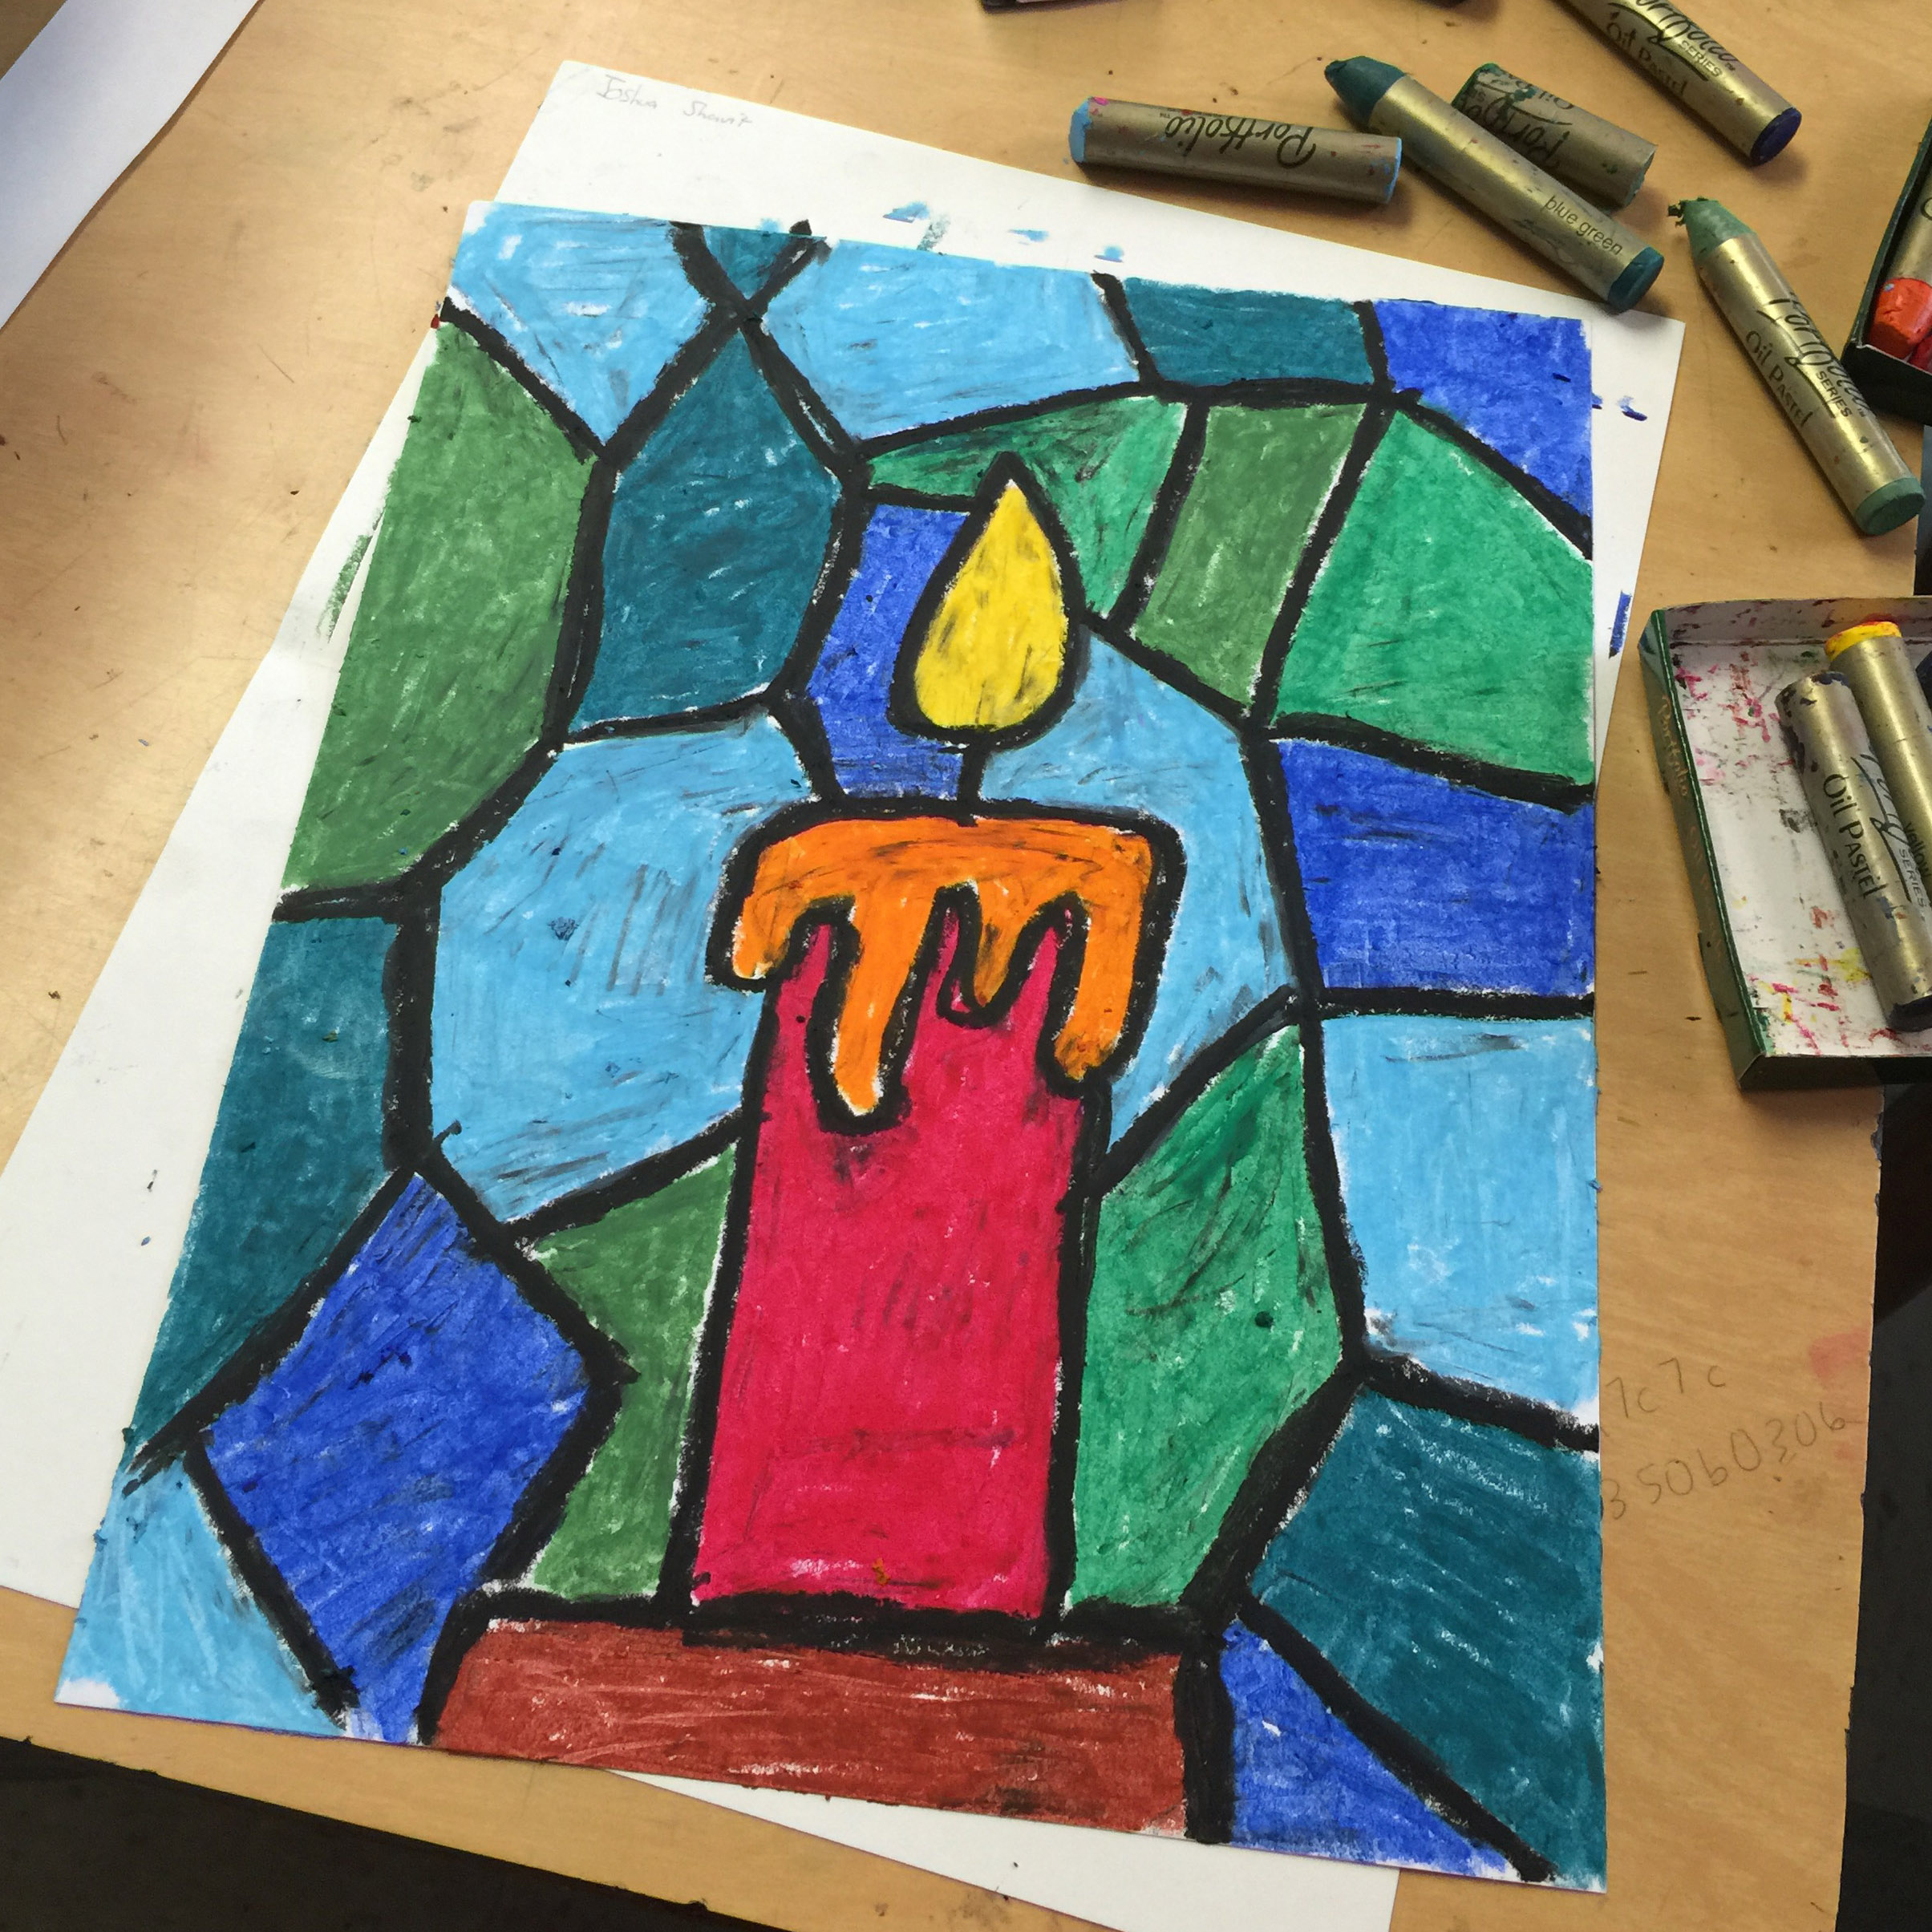 Drawing Lines With Oil Paint : Oil pastel candle drawing art projects for kids